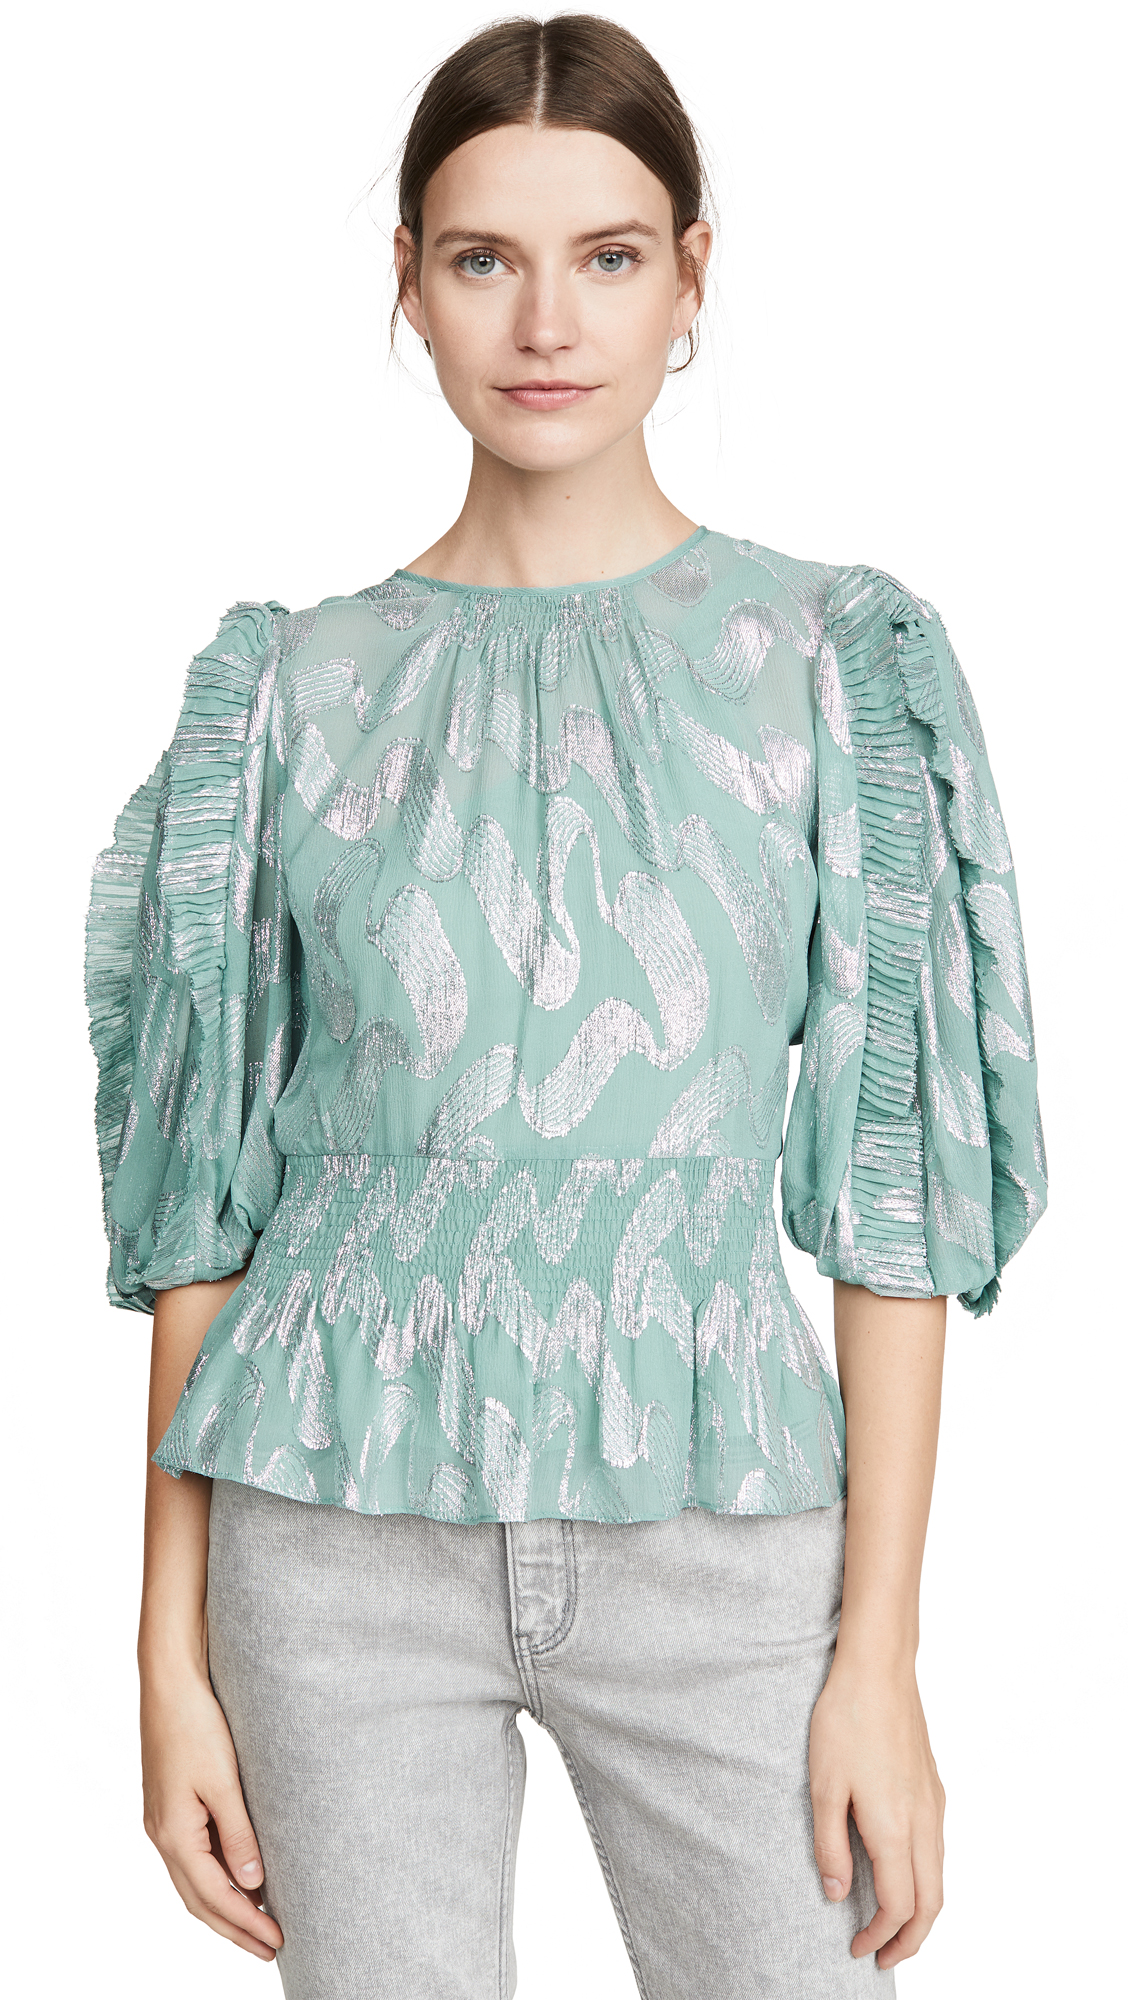 Rebecca Taylor Short Sleeve Metallic Jacquard Top - 40% Off Sale